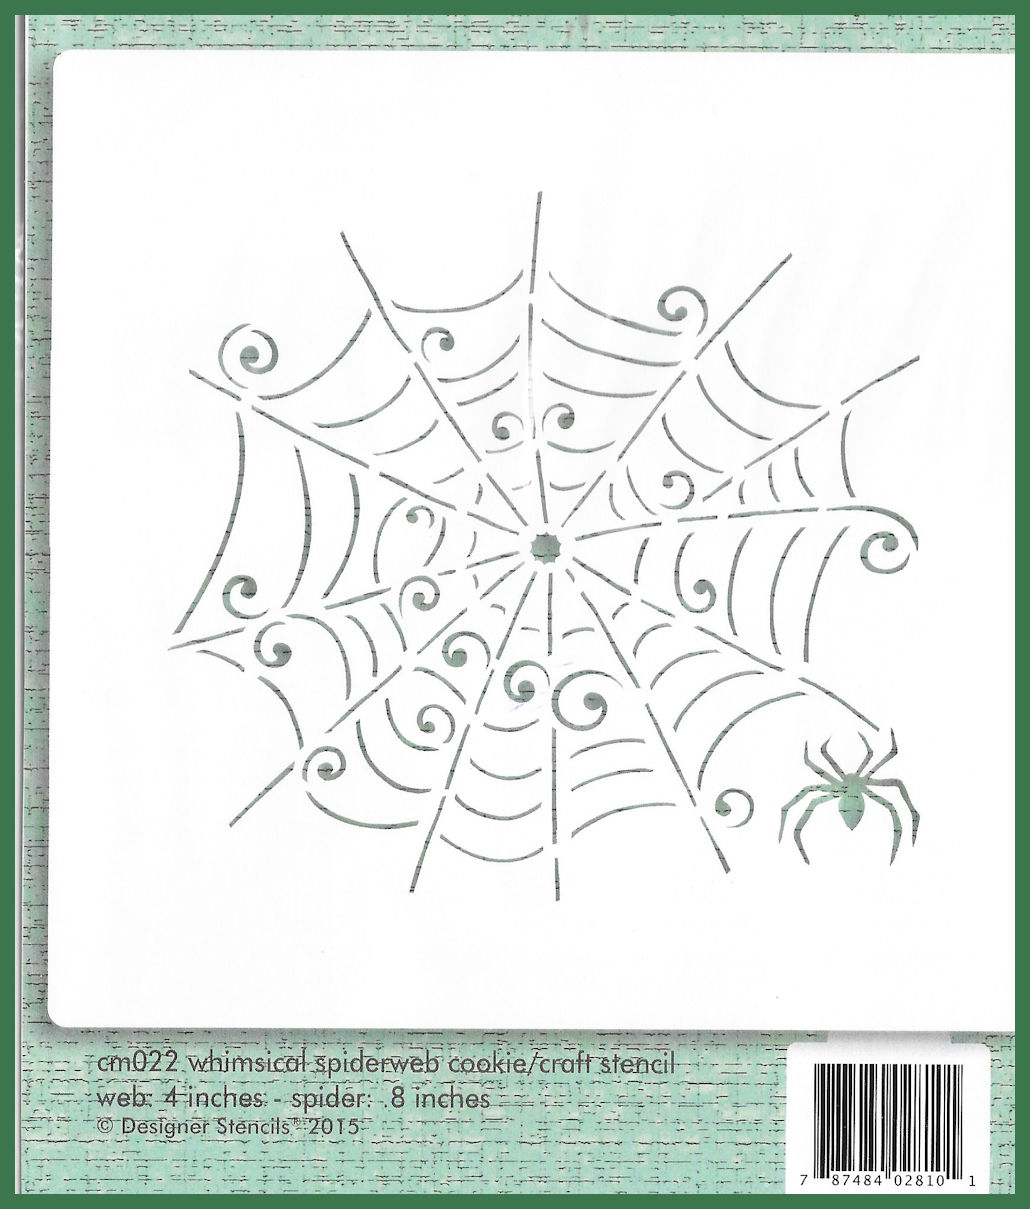 ds-whimsical-spiderweb.jpg